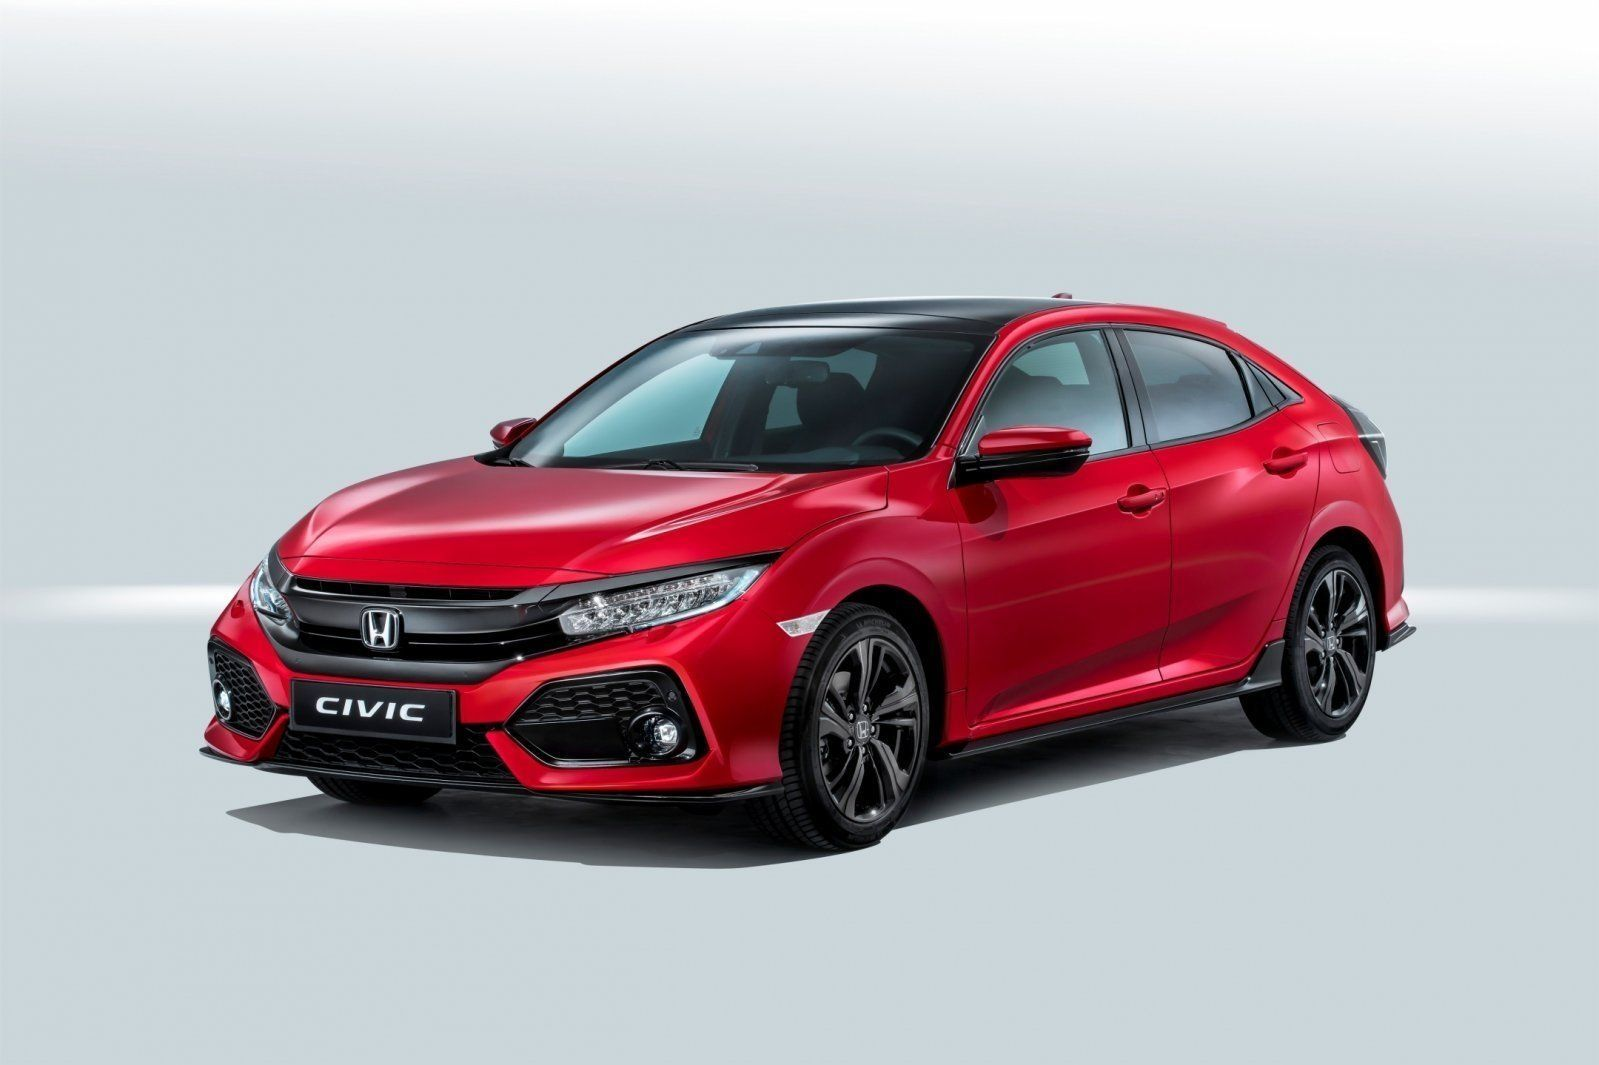 2020 Honda Civic Hybrid New Review Cars Review 2019 Honda Civic Hybrid Honda Civic Hatchback Civic Hatchback